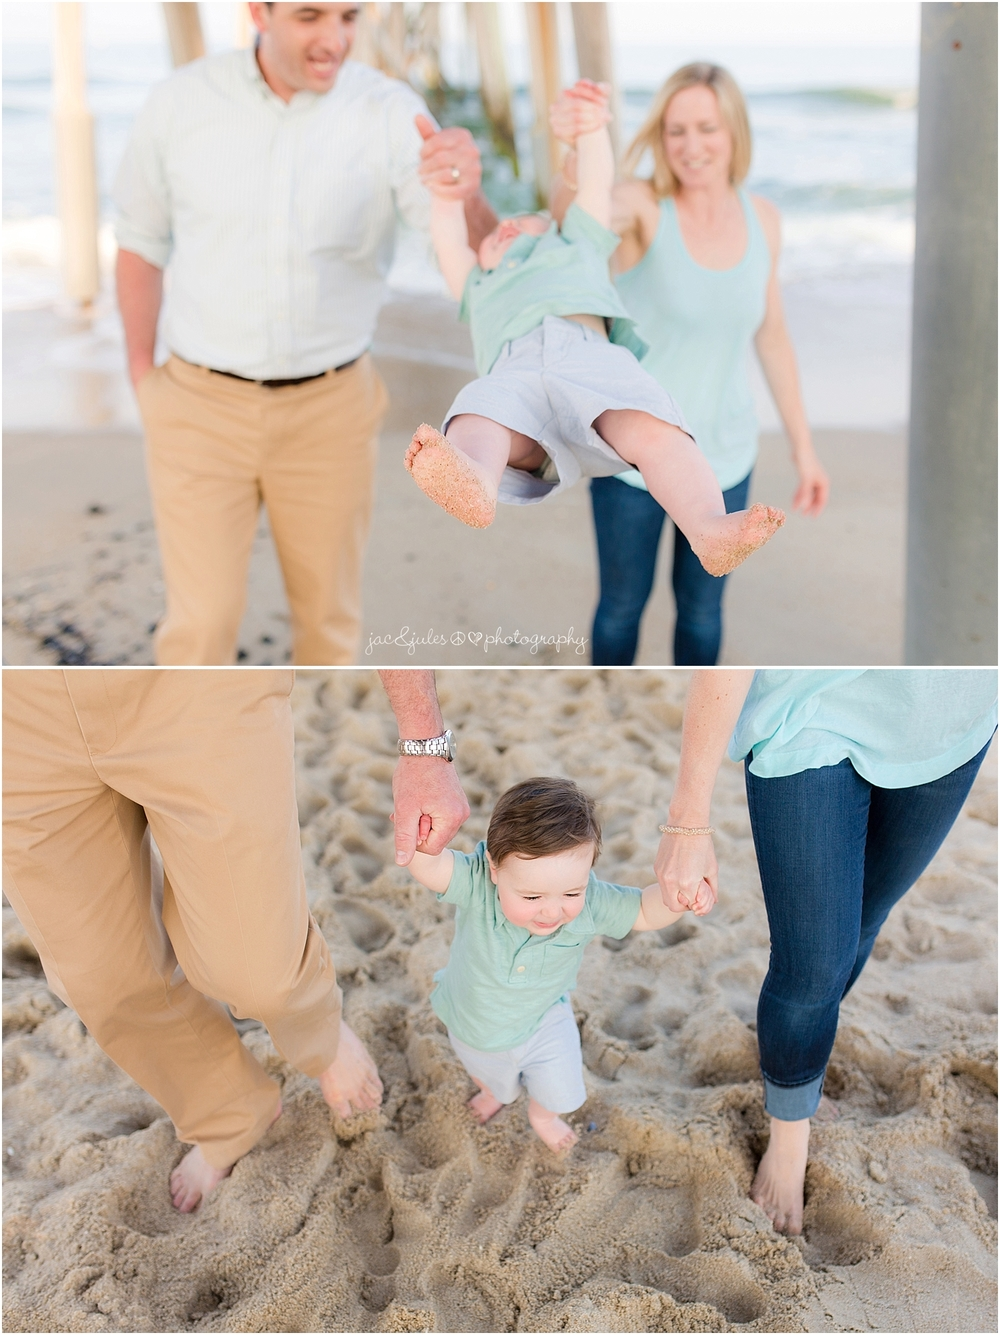 jacnjules photographs family on the beach in belmar nj